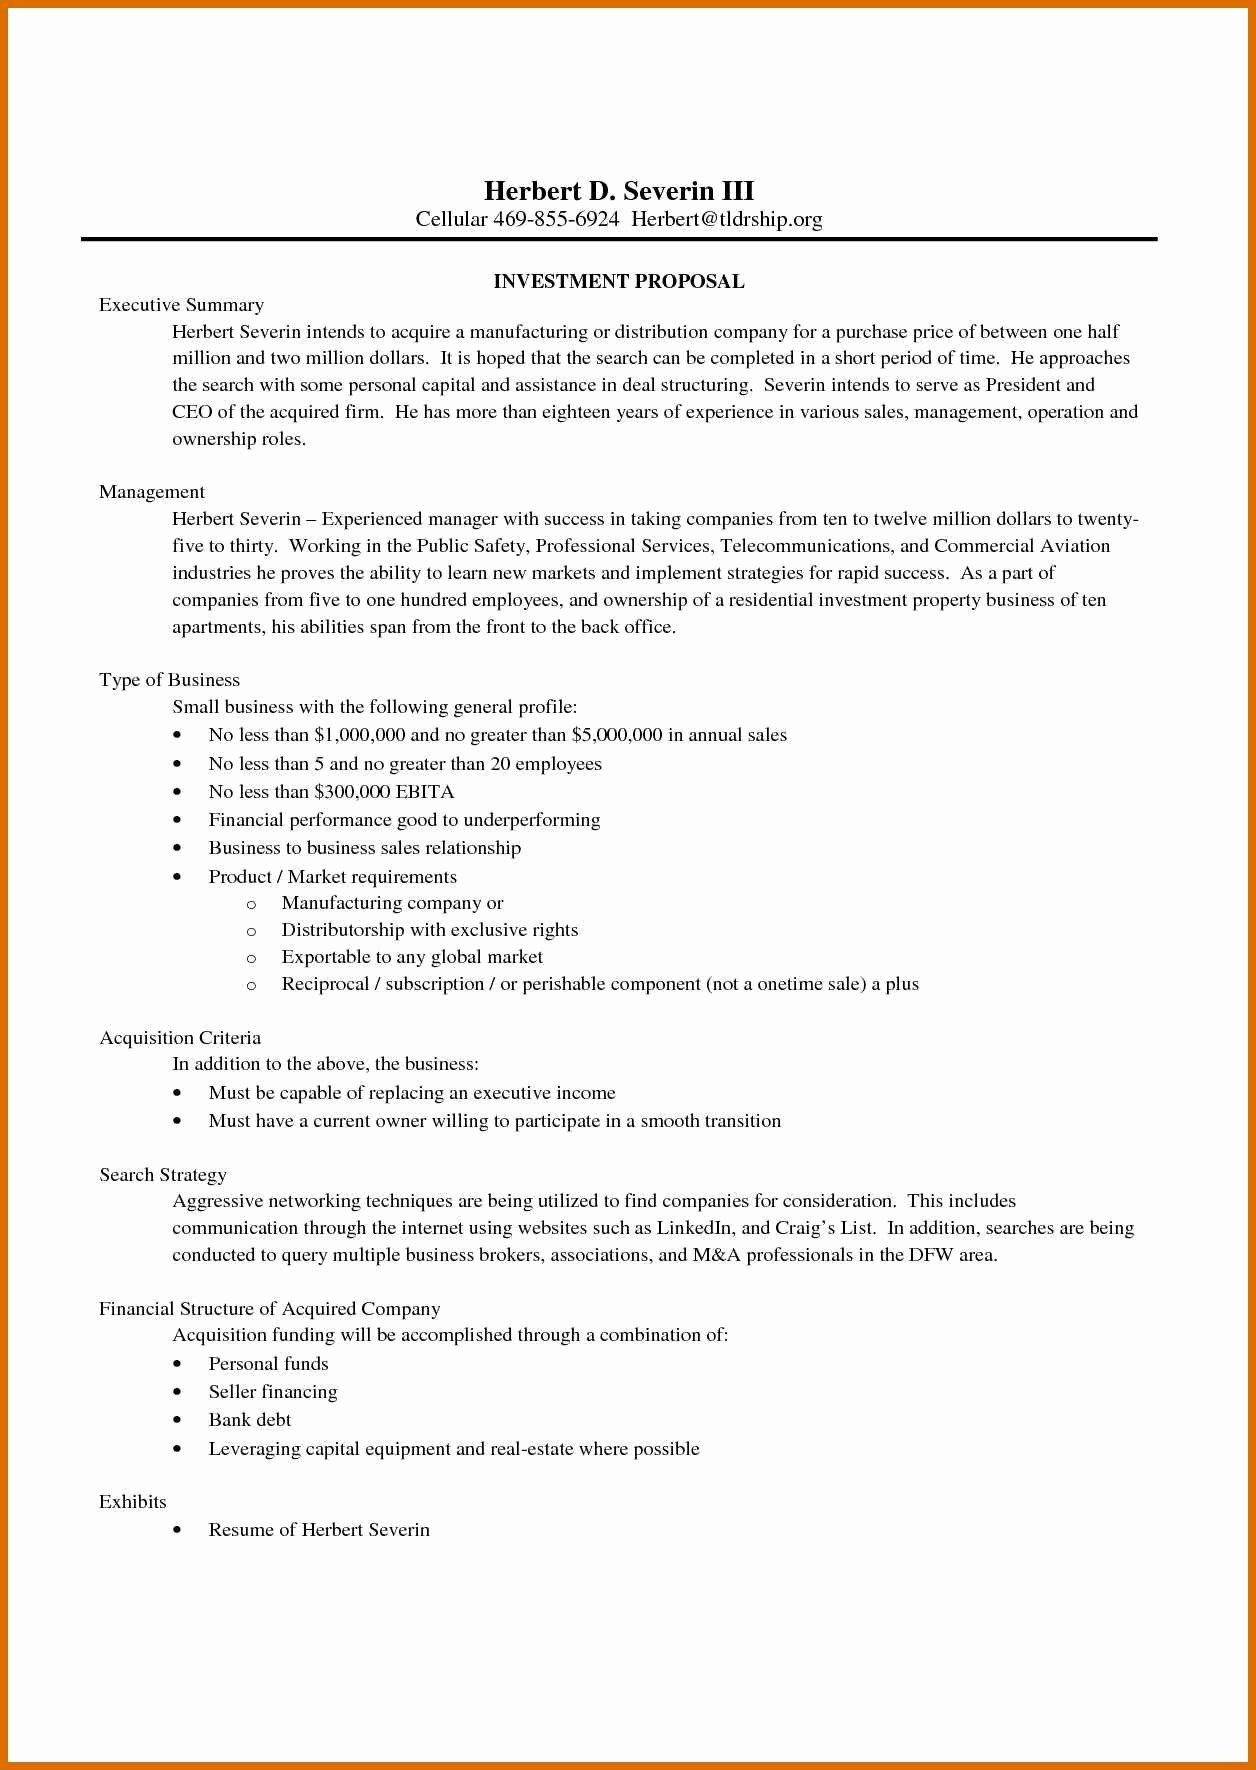 Business Investment Proposal Template  Wilkesworks With Investor Proposal Template